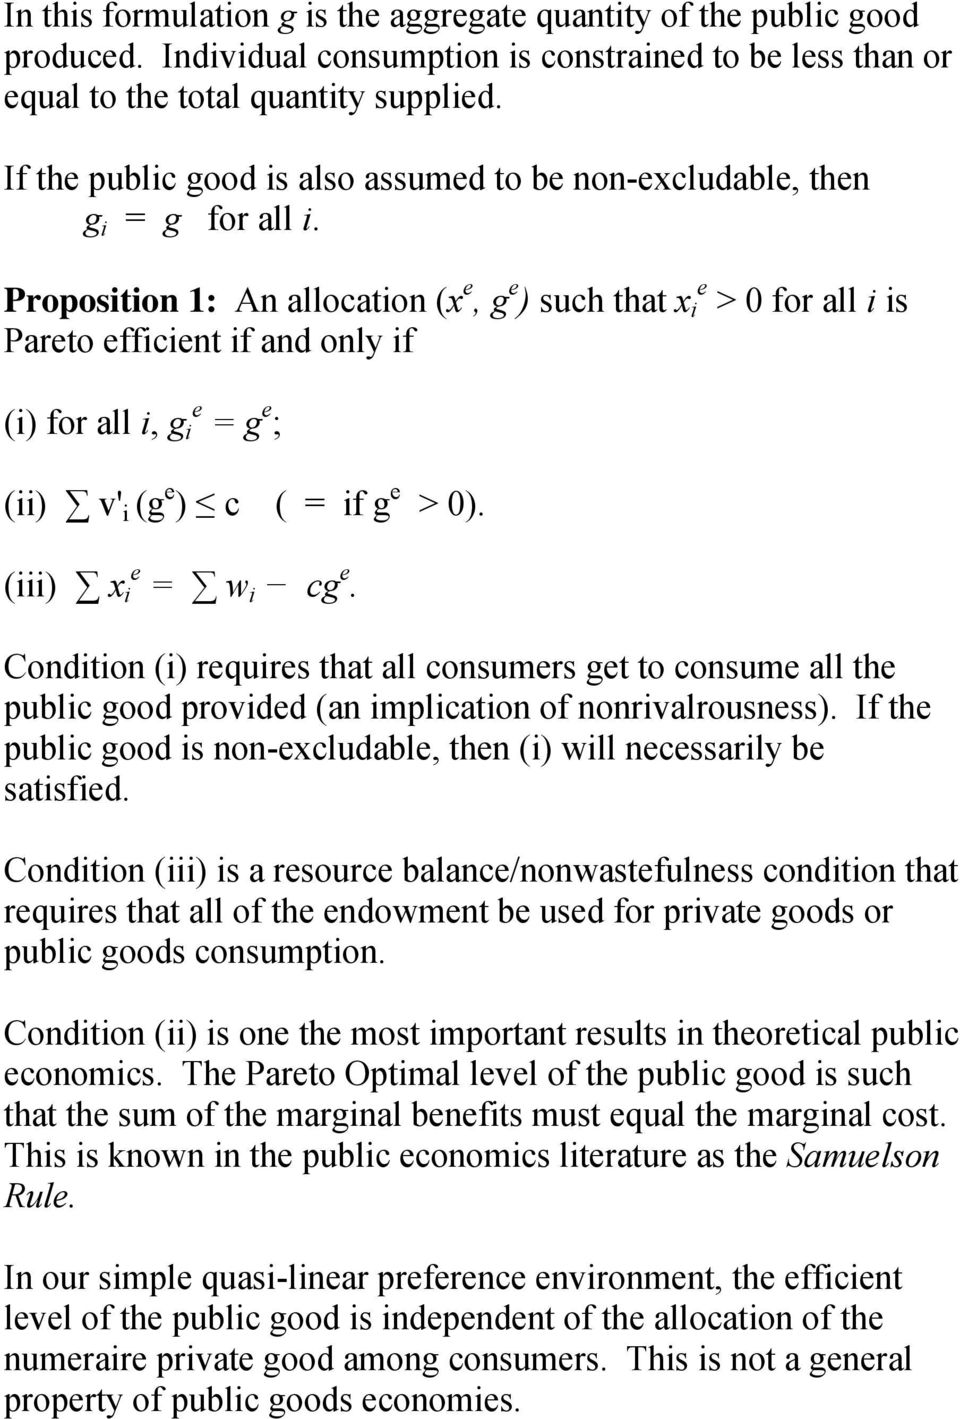 Proposition 1: An allocation (x e, g e ) such that x i e > 0 for all i is Pareto efficient if and only if (i) for all i, g i e = g e ; (ii) v' i (g e ) c ( = if g e > 0). (iii) x i e = w i cg e.